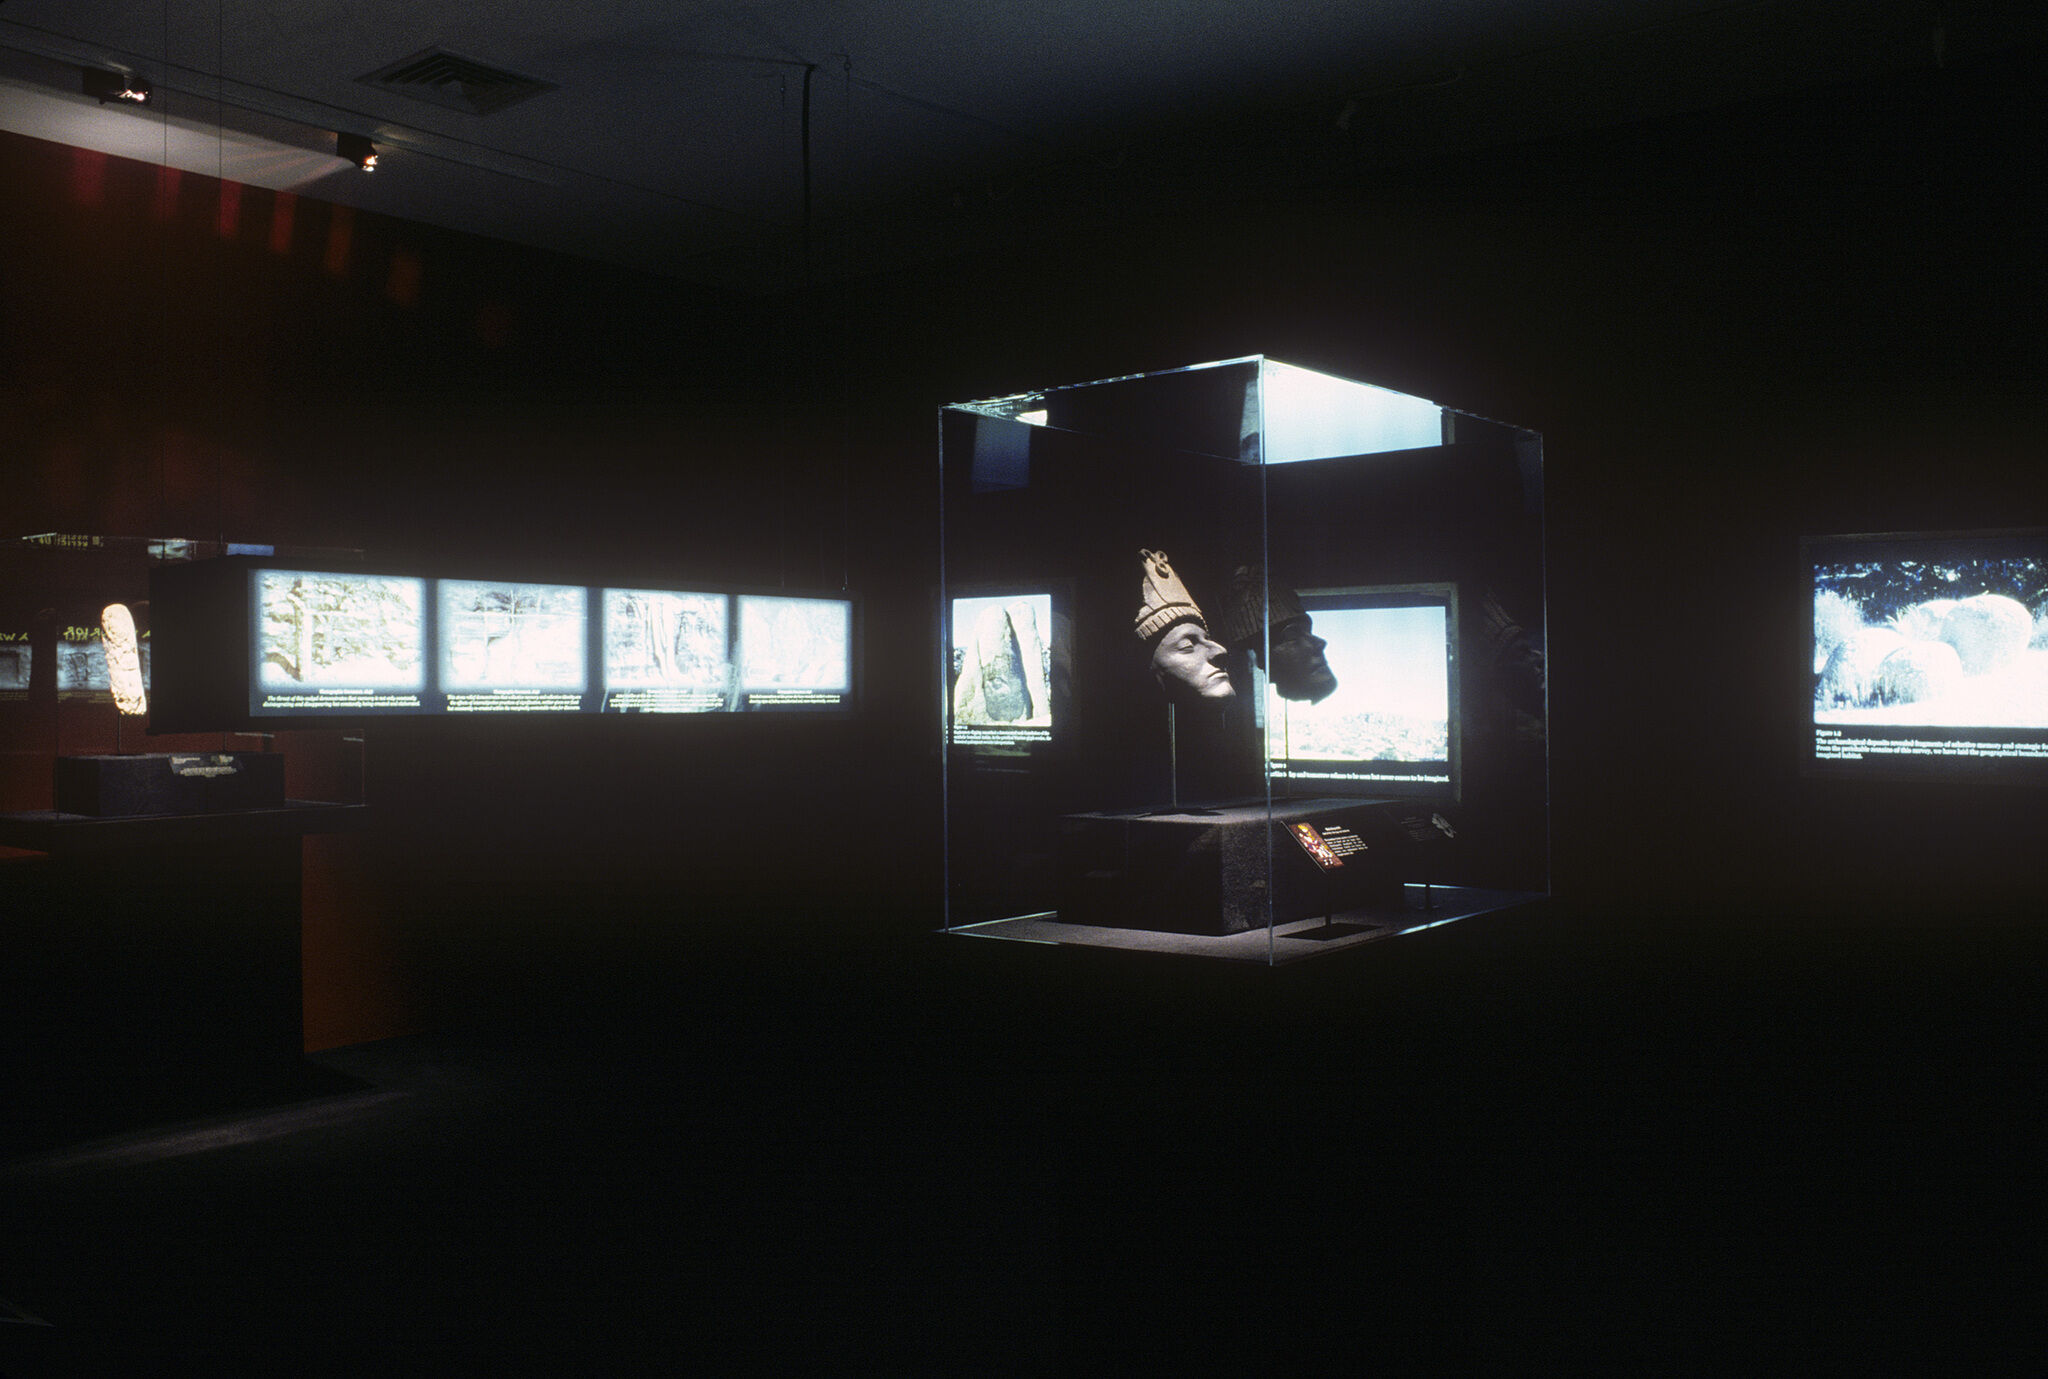 A dark gallery with a sculpture in a glass display case, along with brightly lit monitors around it.